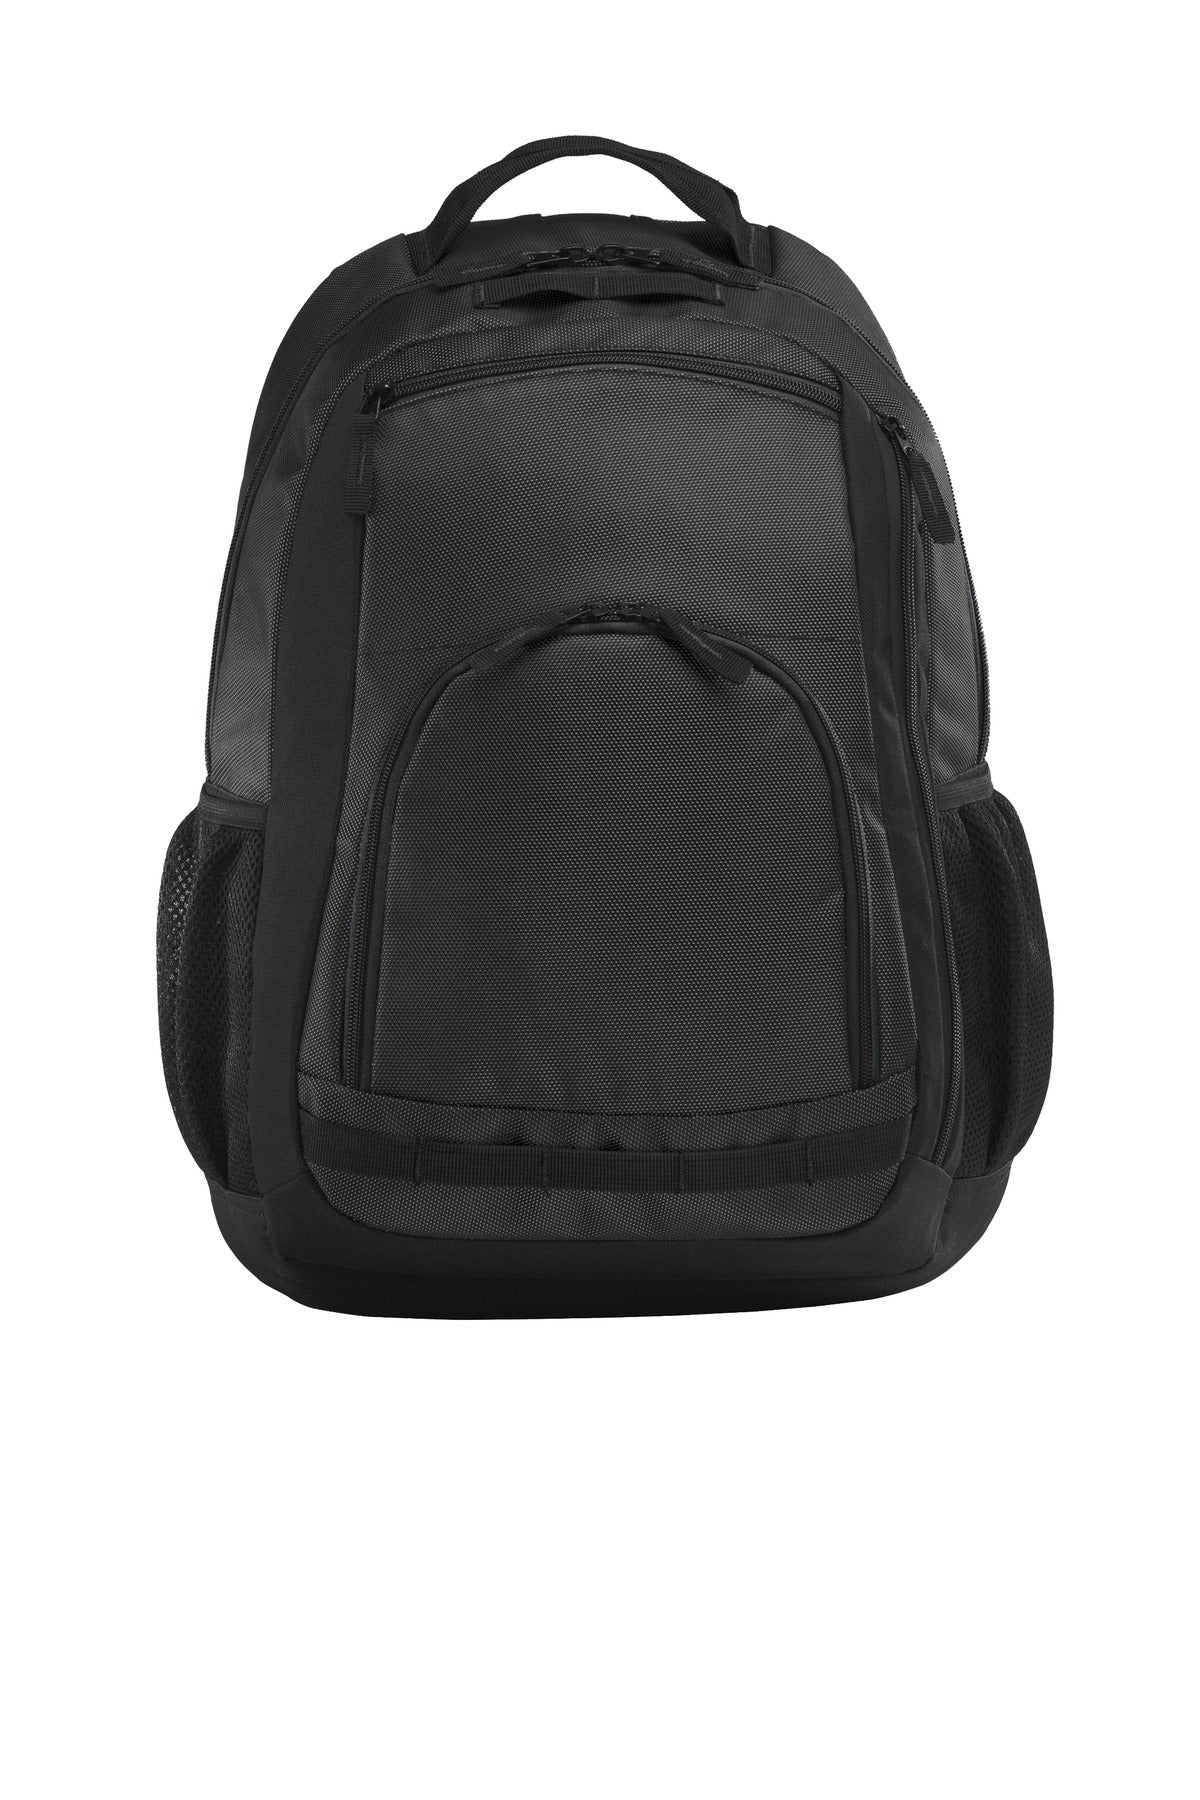 Port Authority Xtreme Backpack. BG207